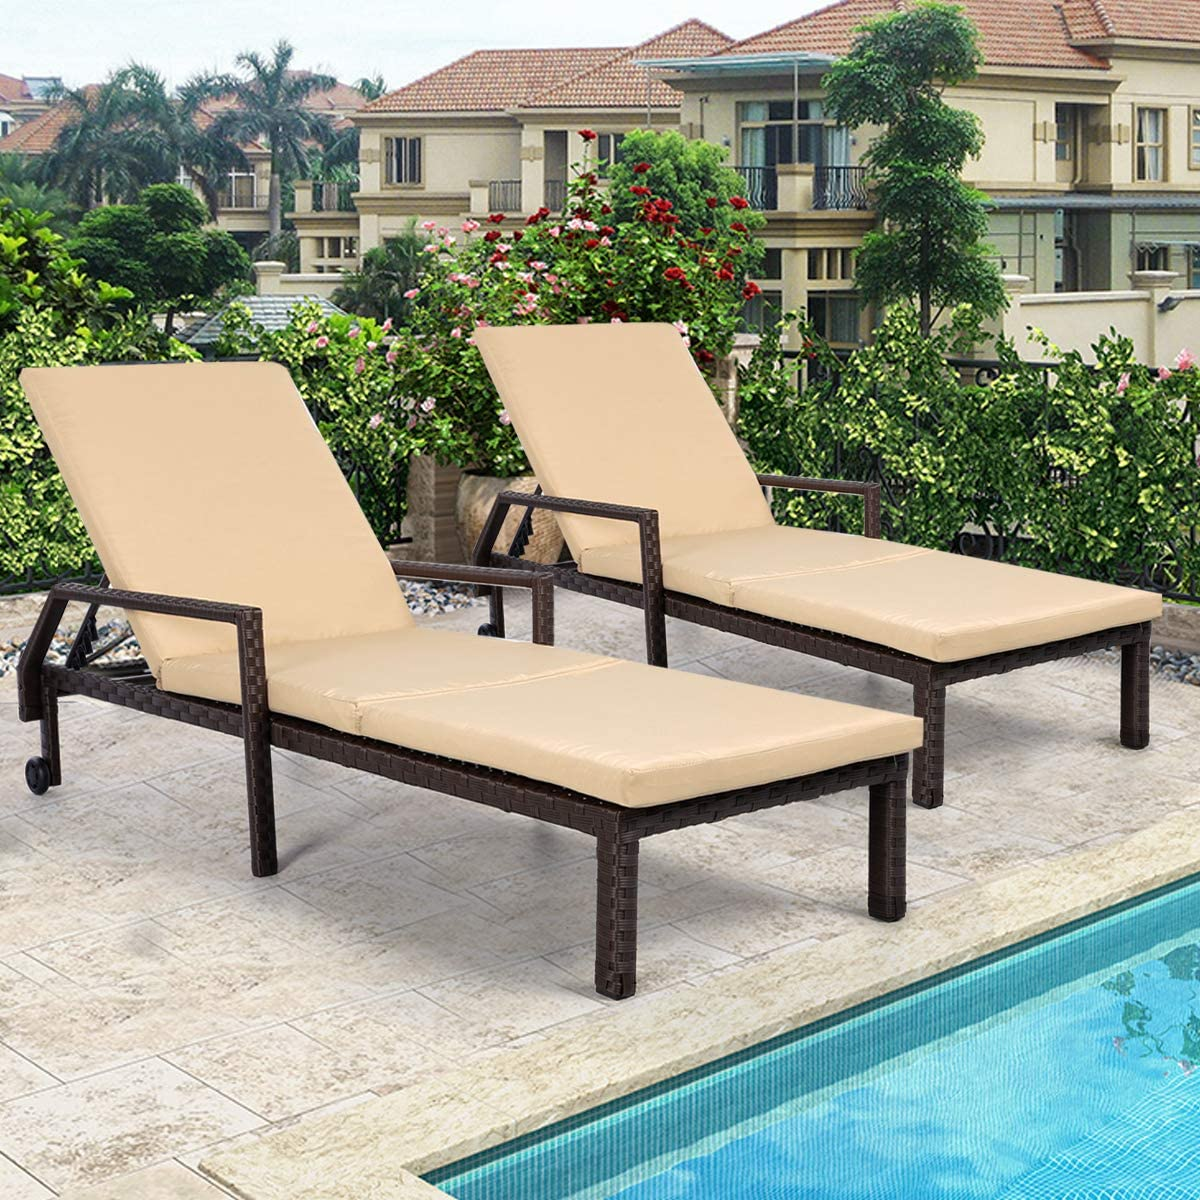 - Amazon.com: AECOJOY Adjustable Outdoor Chaise Lounge Chair Rattan